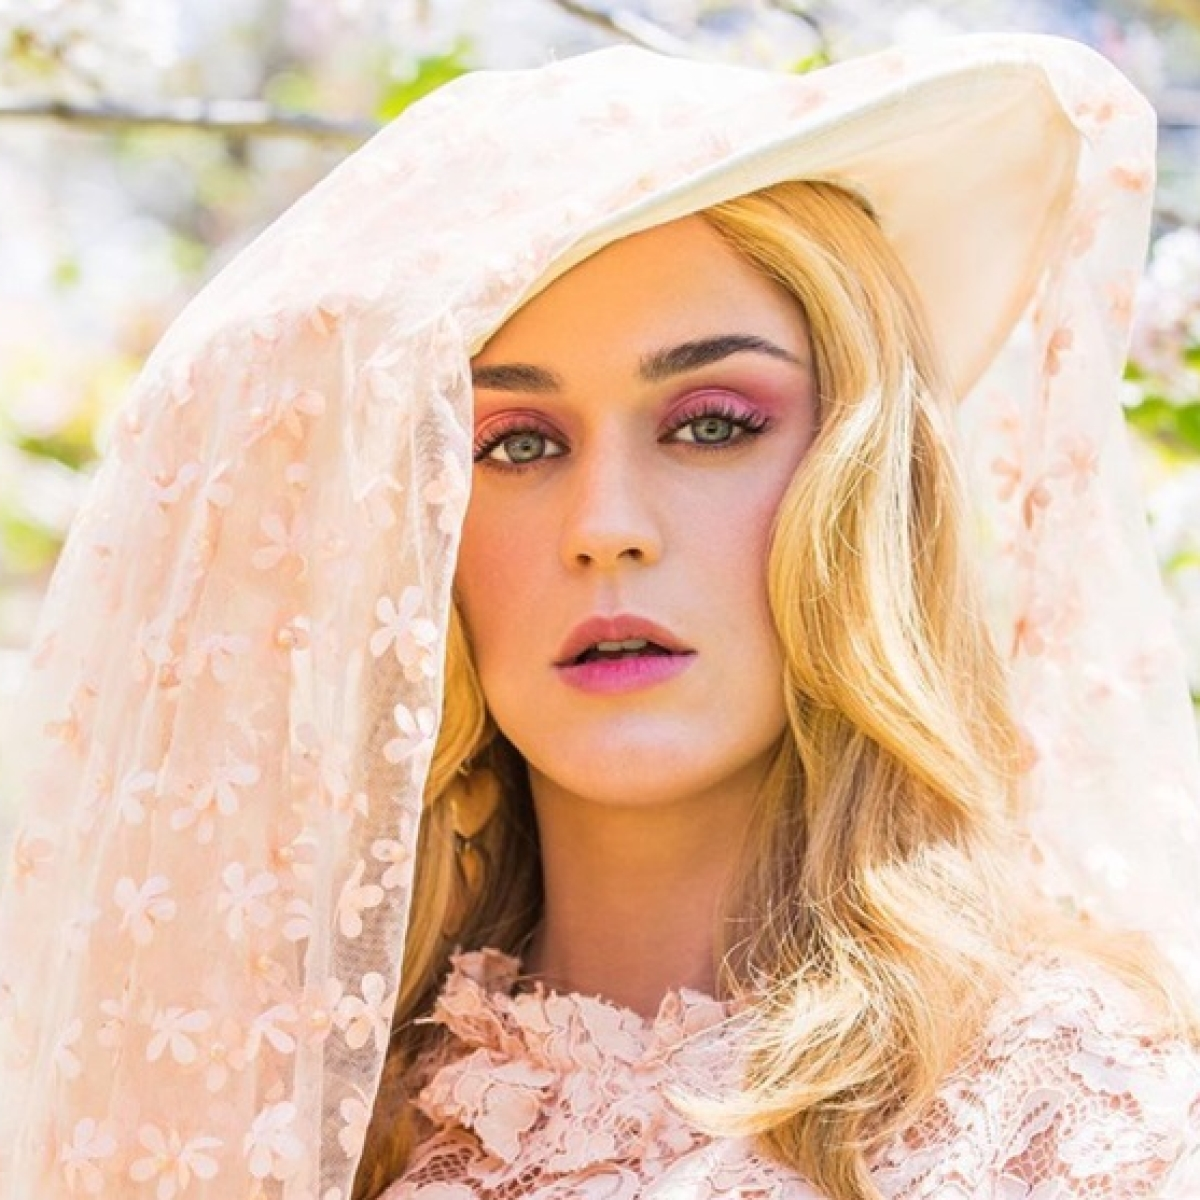 Katy Perry sued for USD 150K for posting Halloween picture